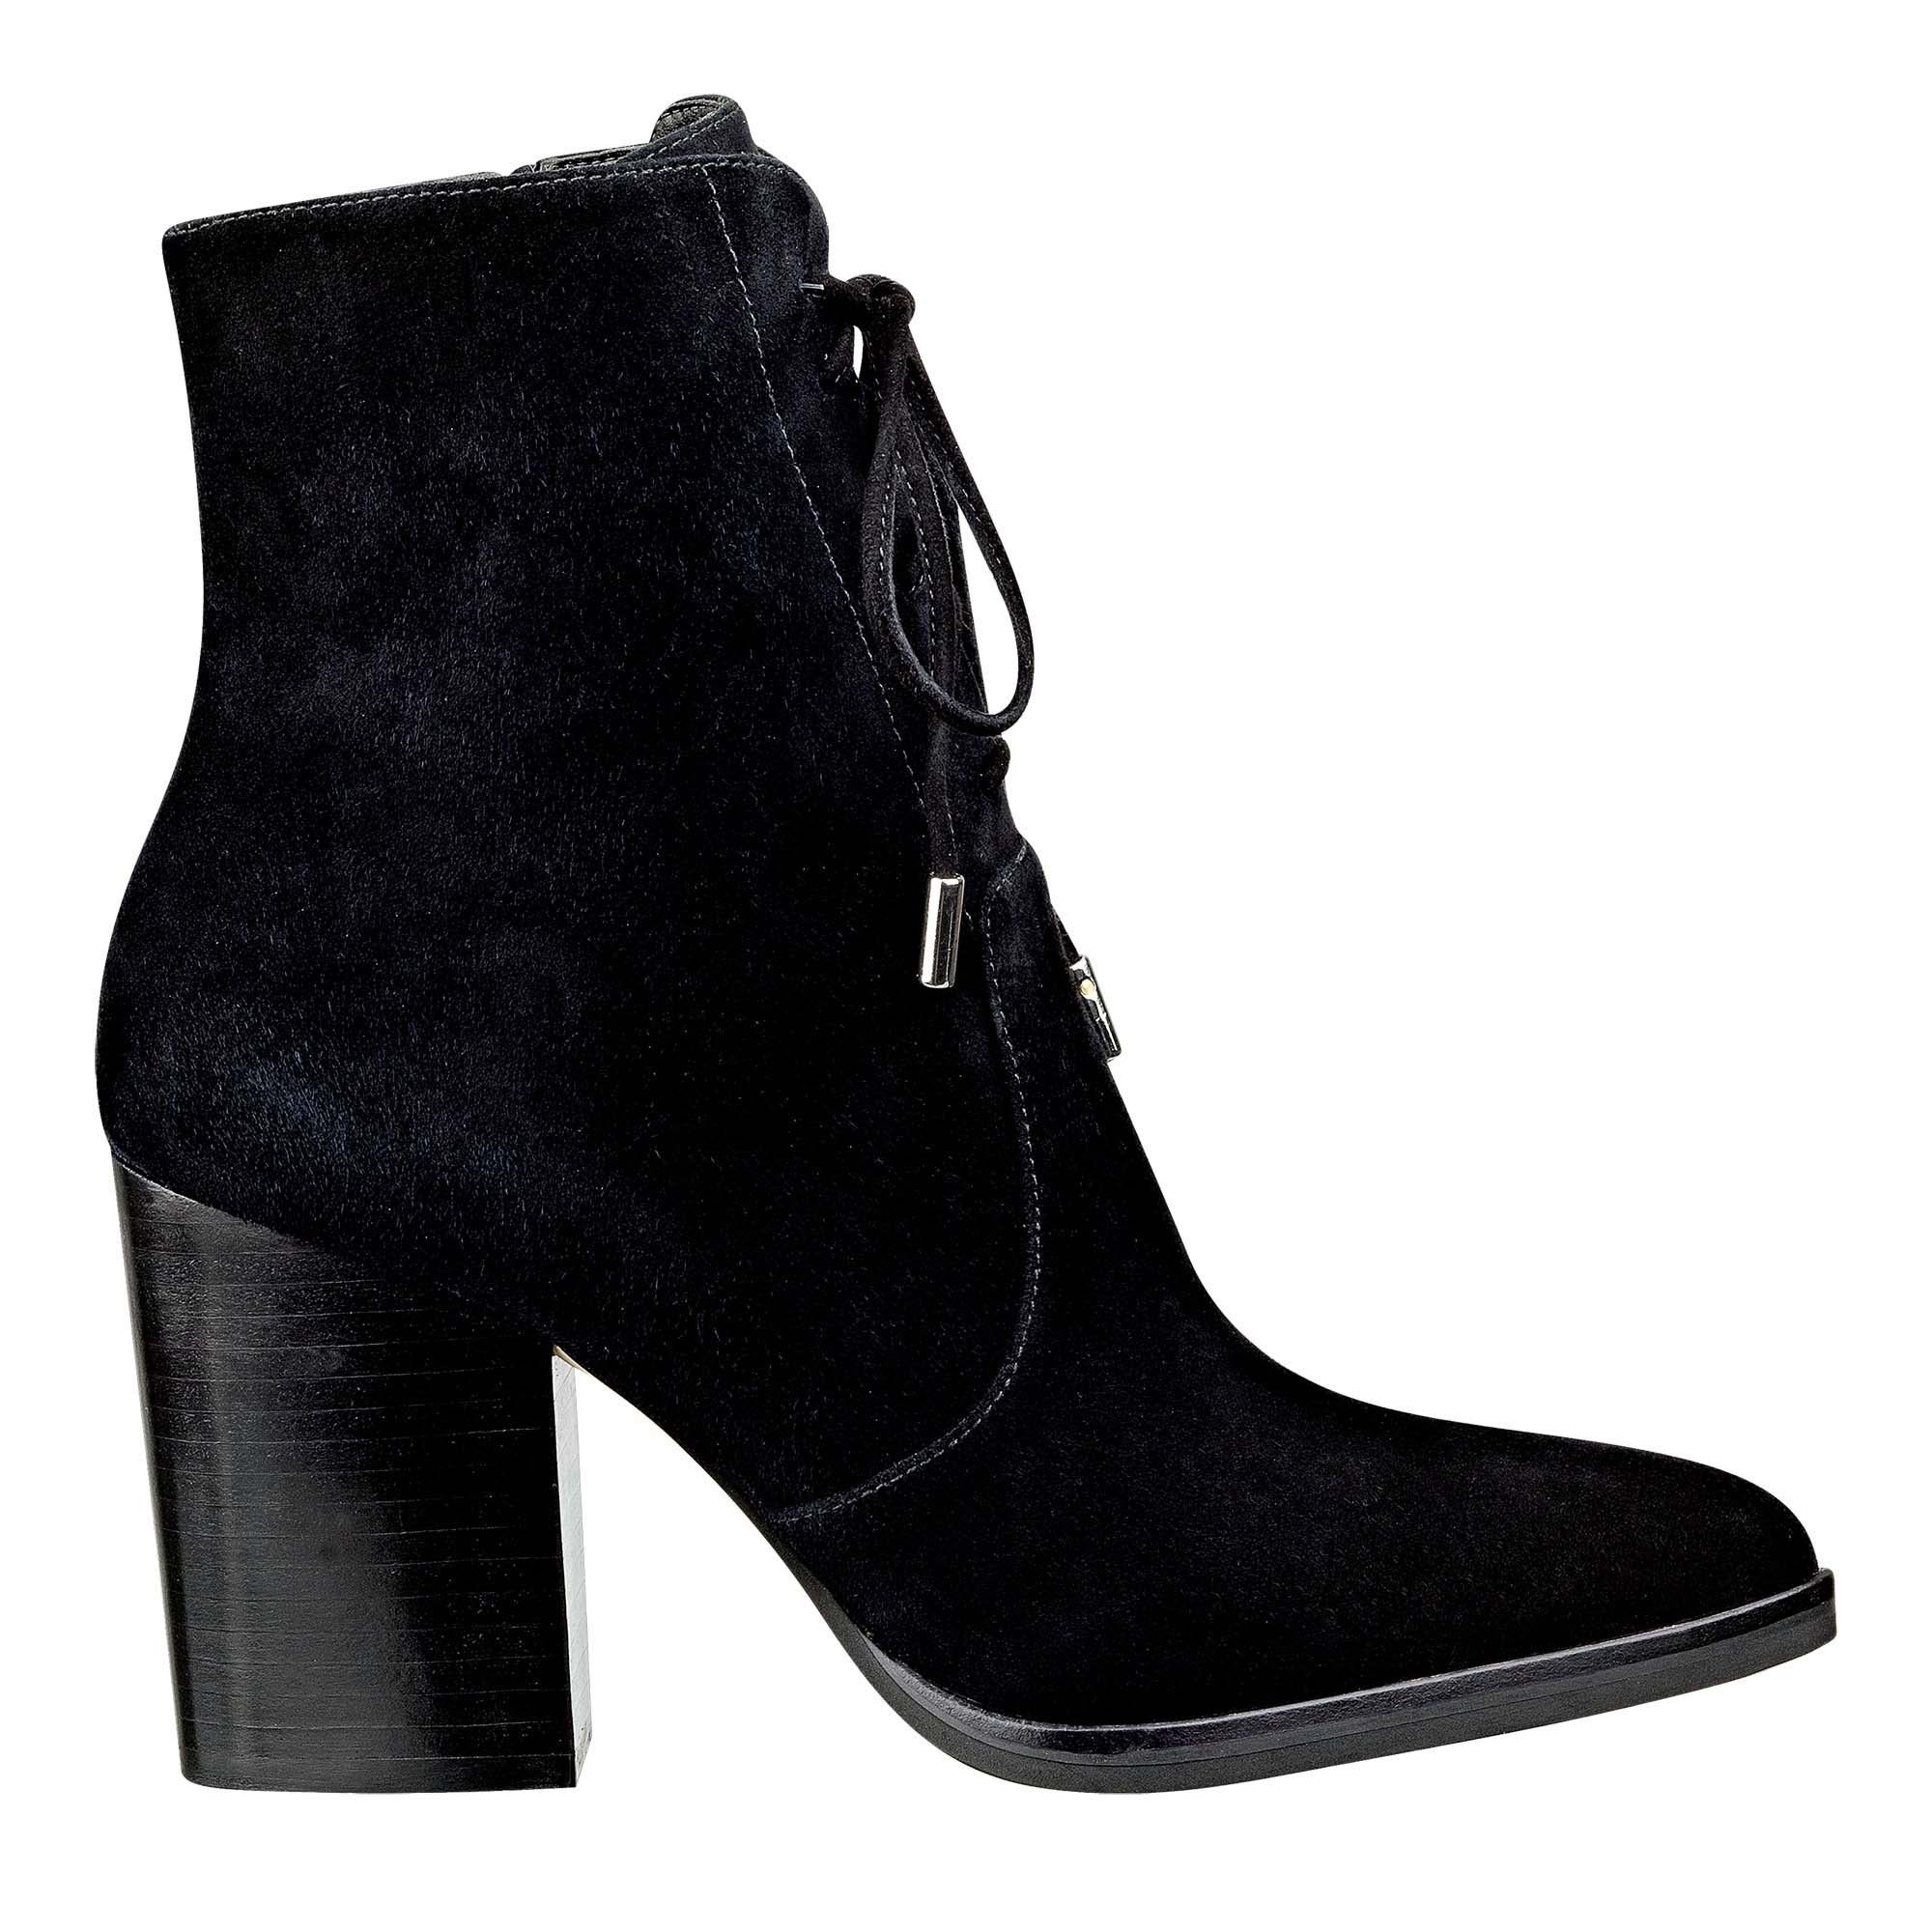 A high-ankle silhouette with stacked heel make for a polished lace-up bootie.